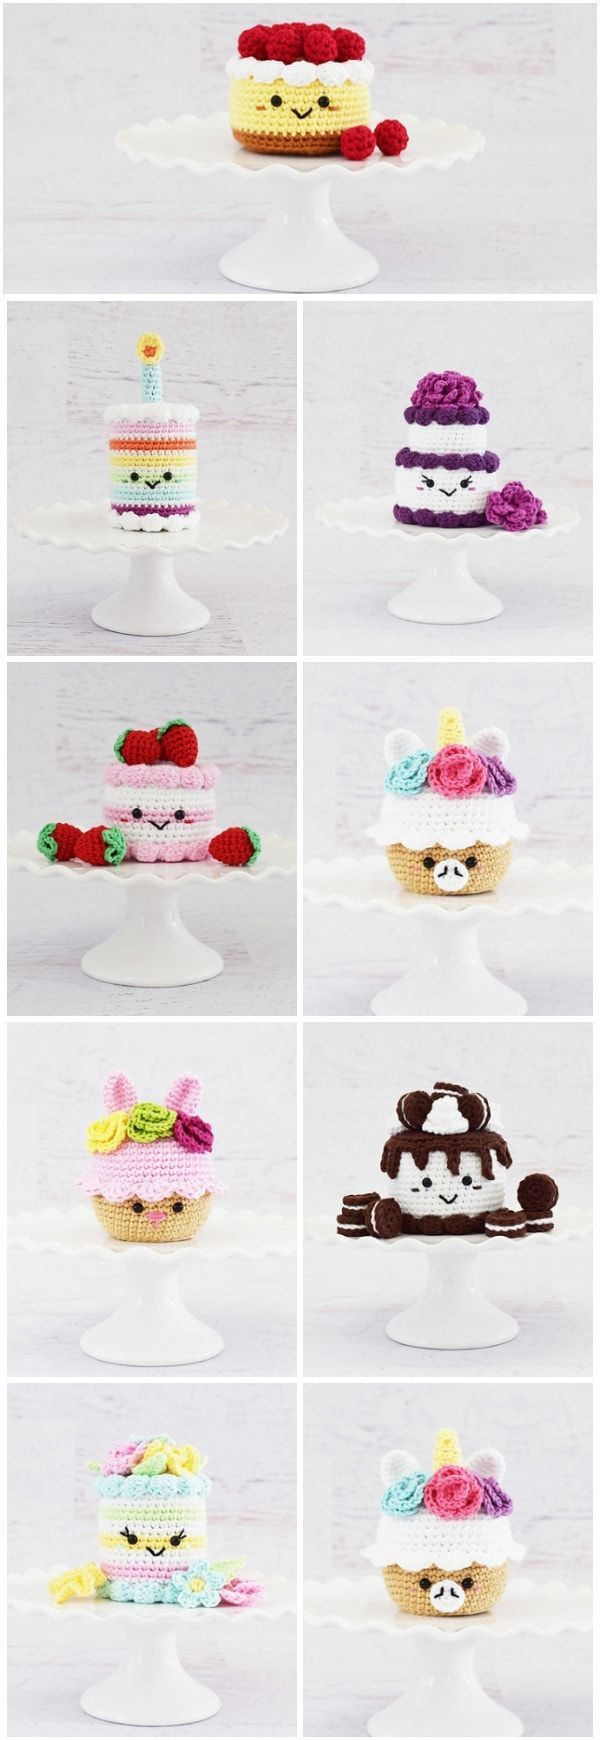 These Crochet Cupcake and cake Patterns can be a nice alternative to the usual p